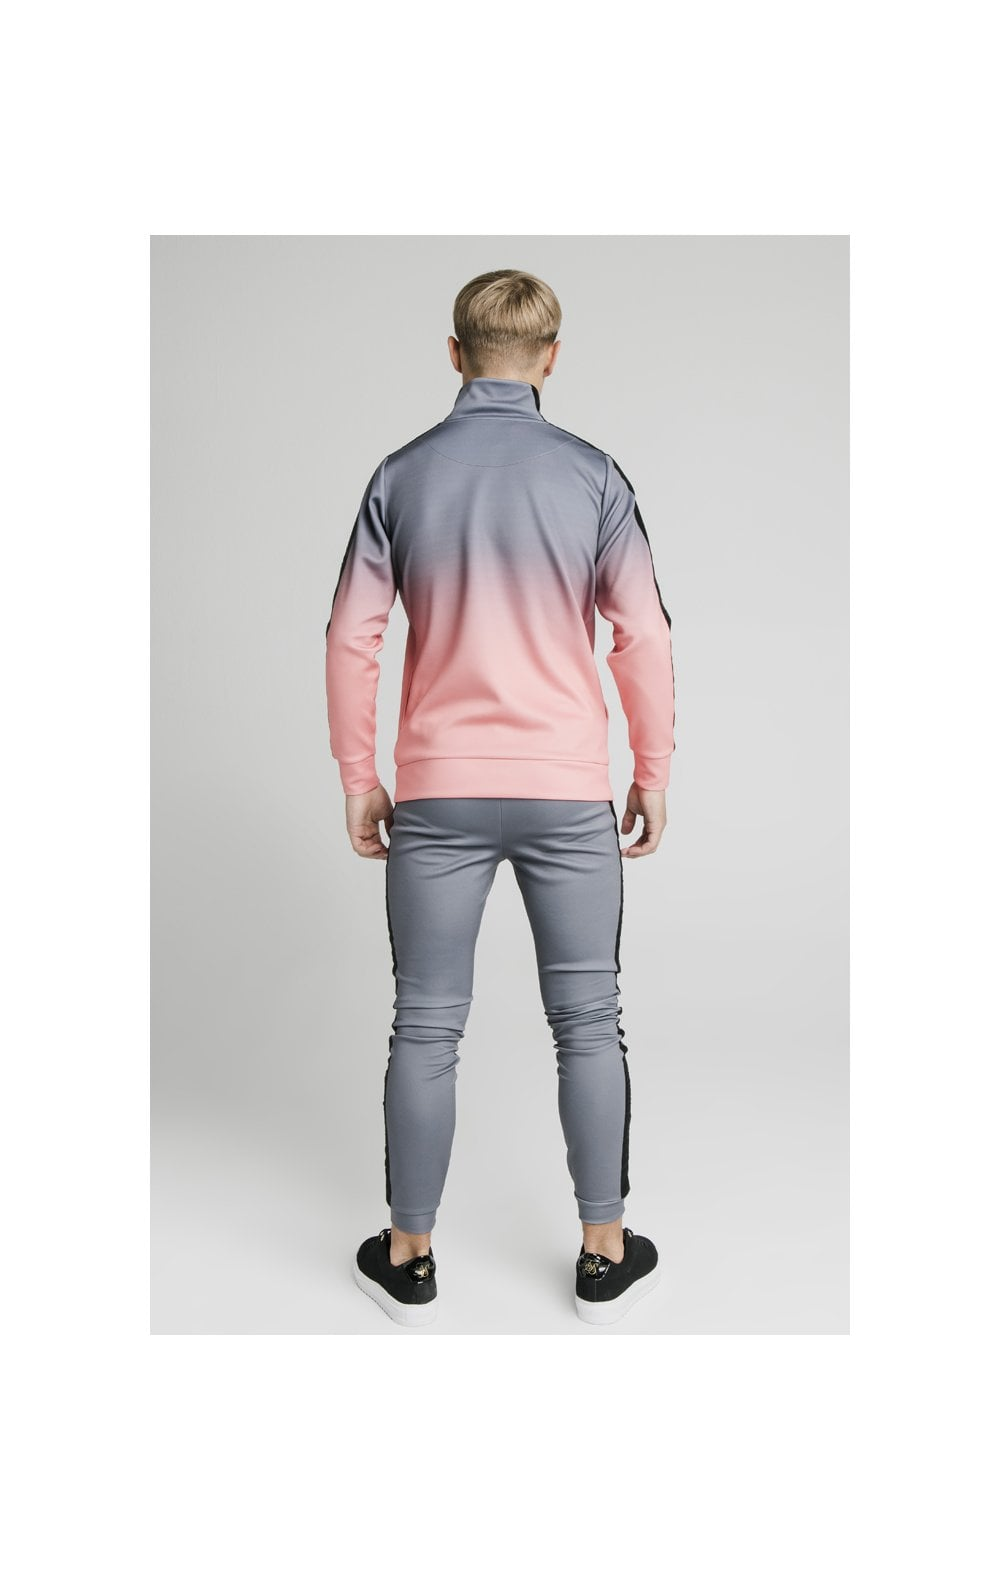 Illusive London Athlete Pants - Grey (6)